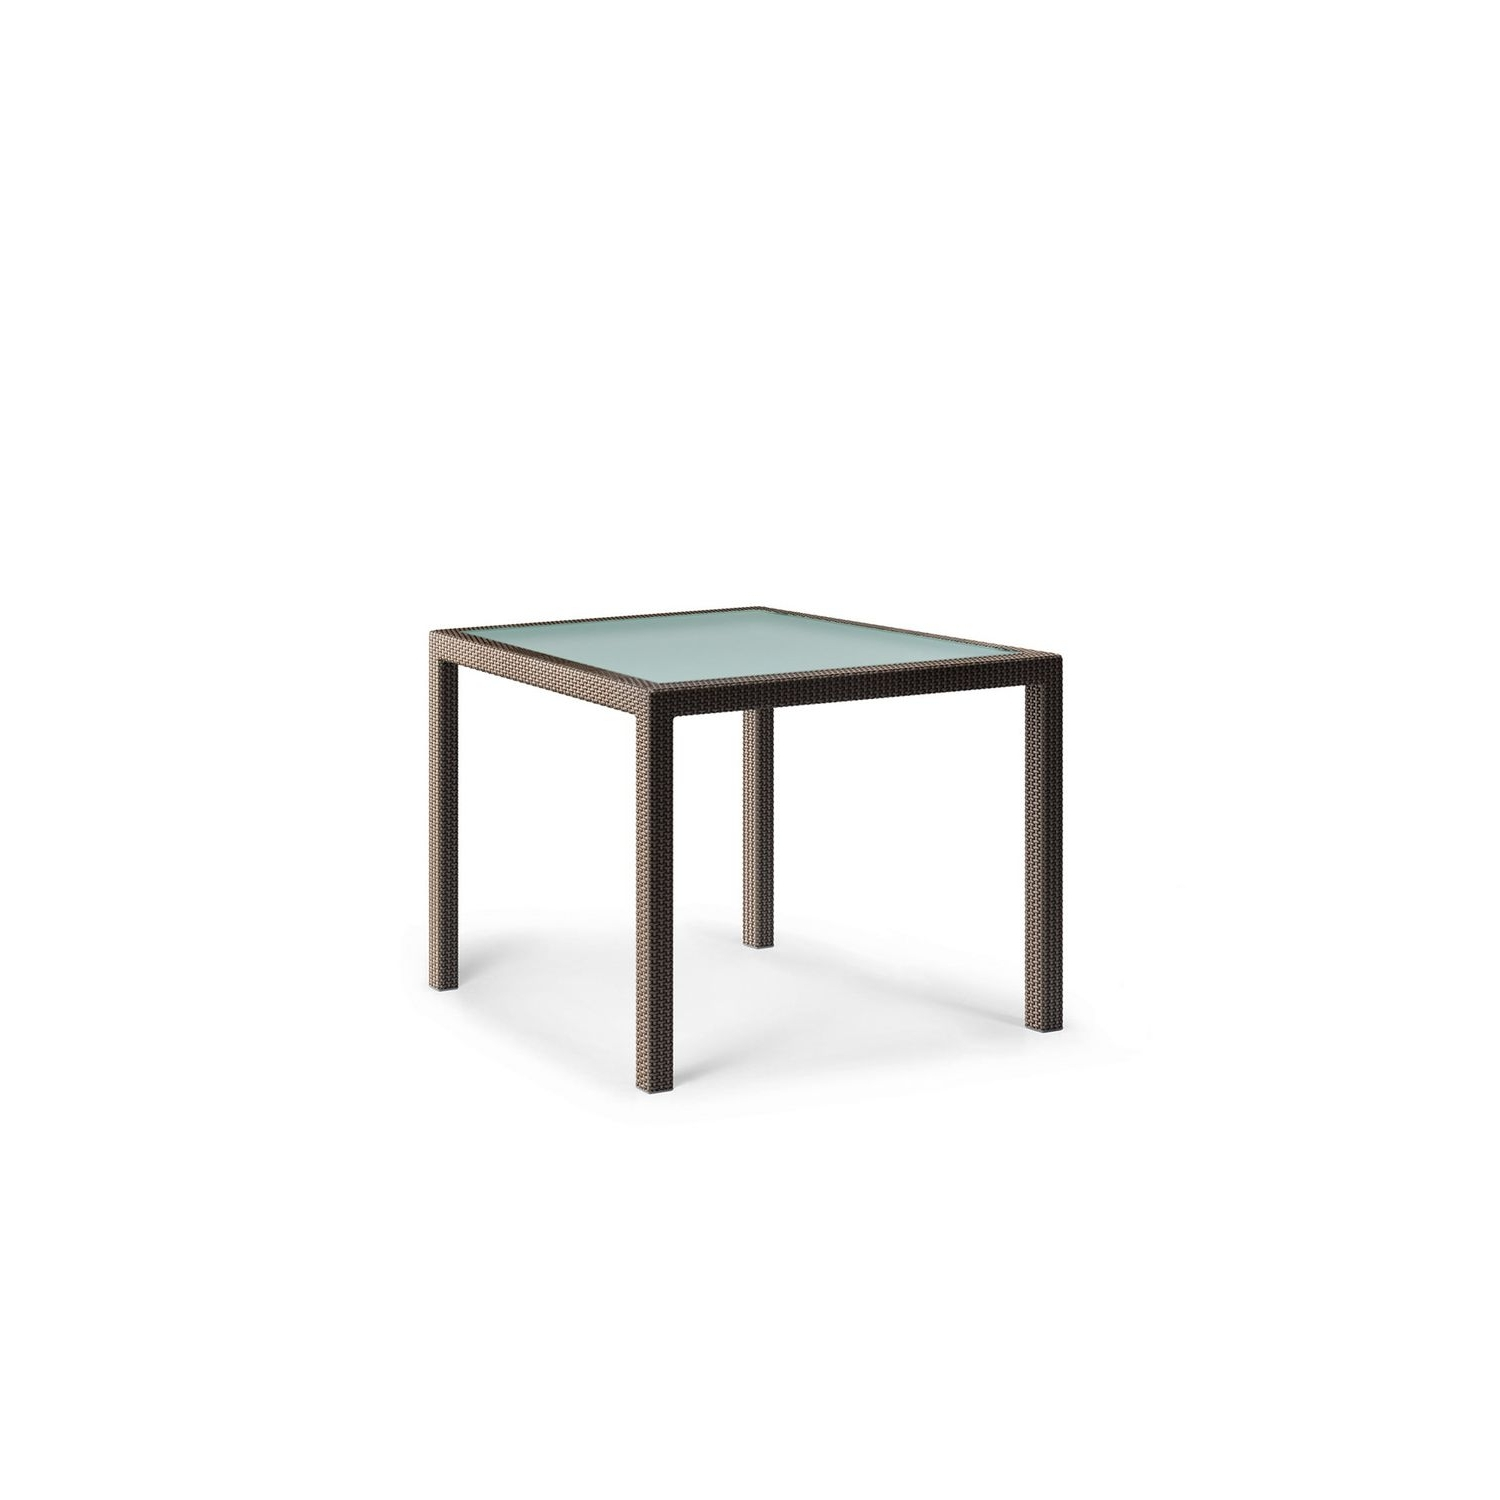 Well Liked Wicker And Glass Dining Tables Regarding Contemporary Dining Table / Glass / Resin Wicker / Rectangular (View 25 of 25)